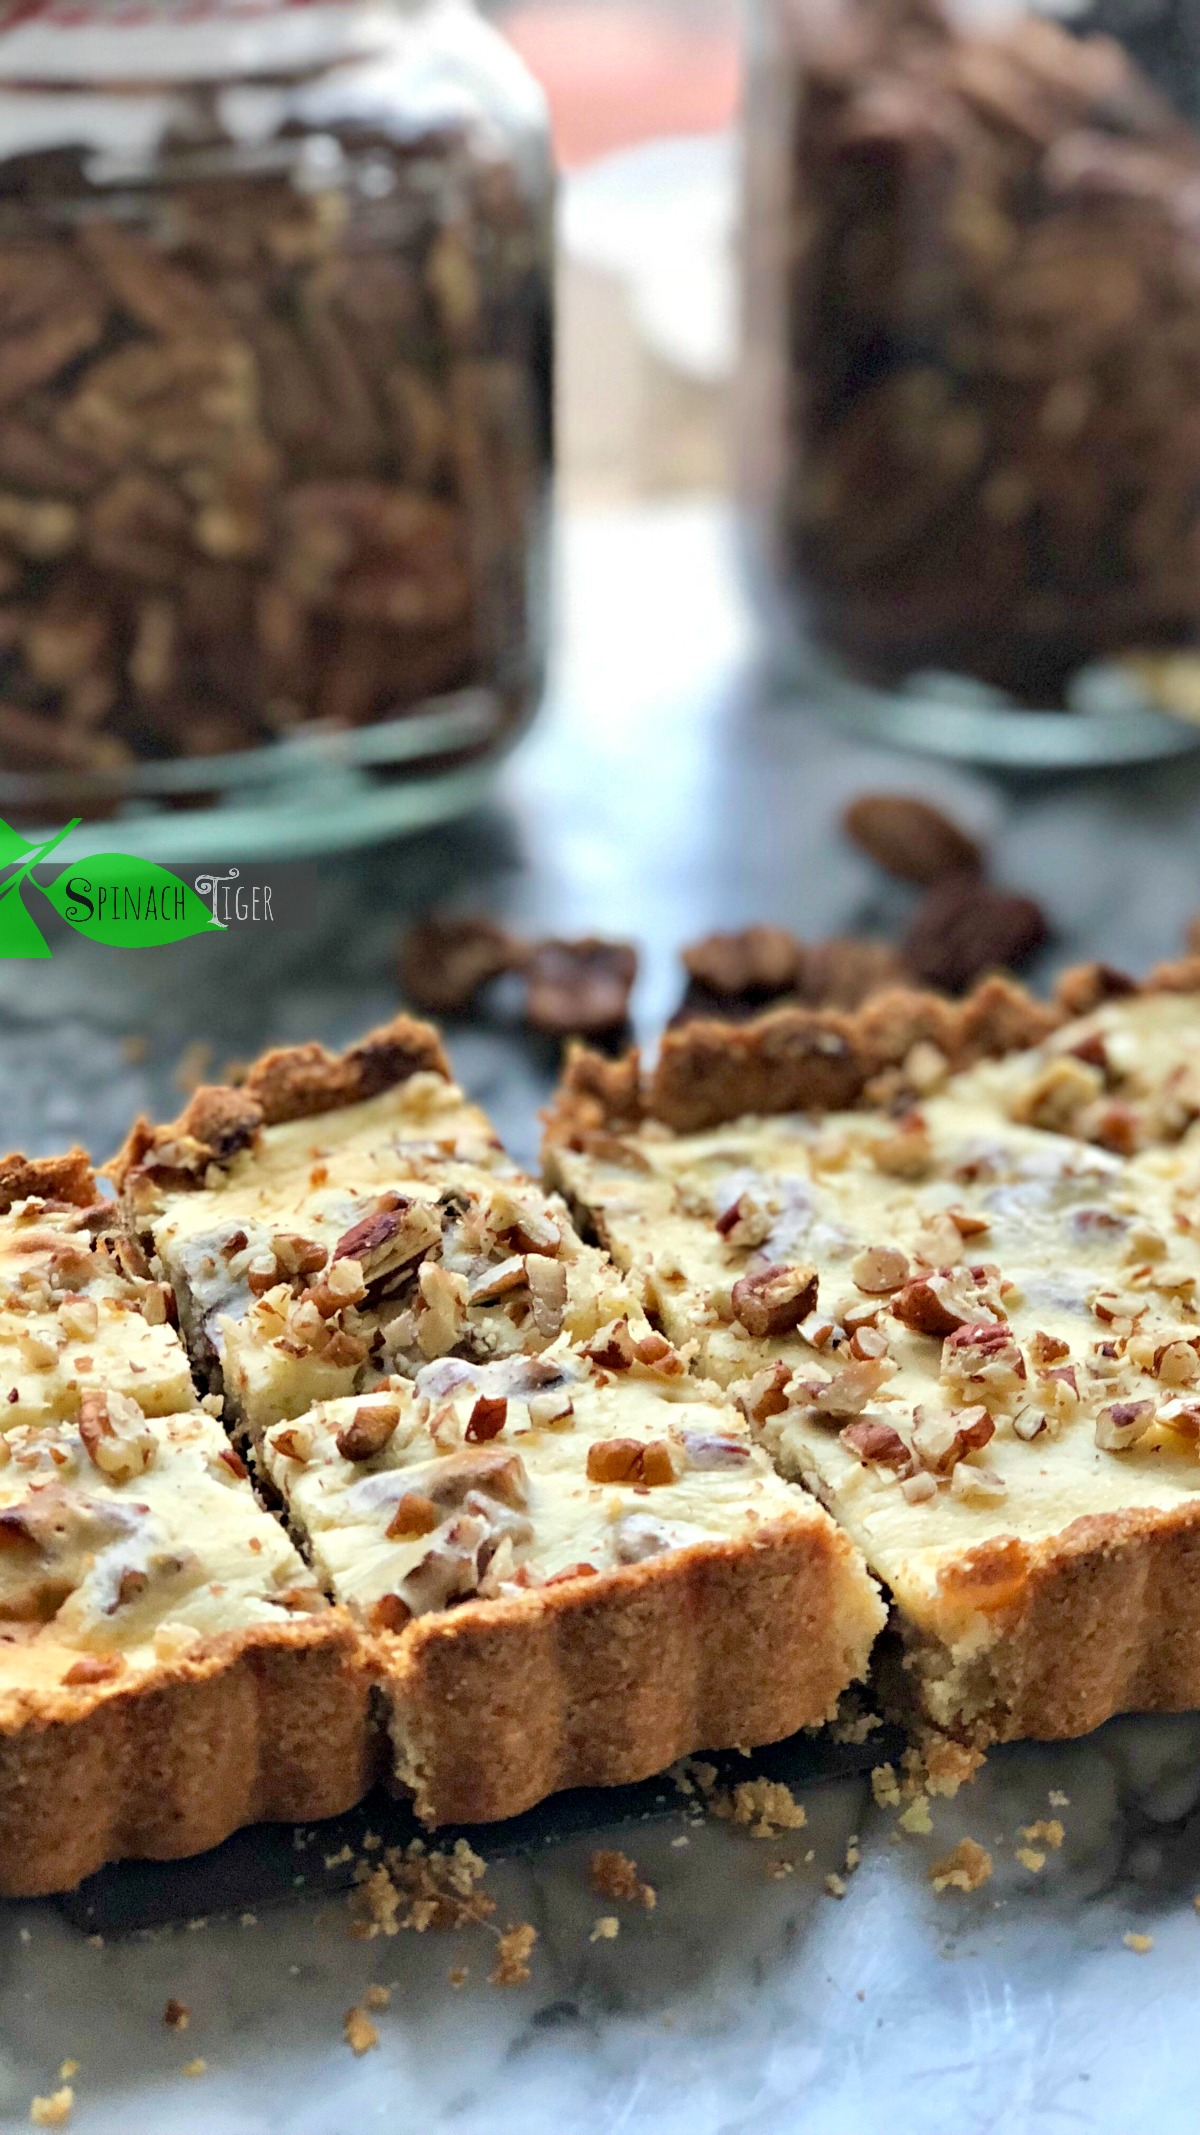 Sugar Free Maple Pecan Cheesecake Bars from Spinach Tiger